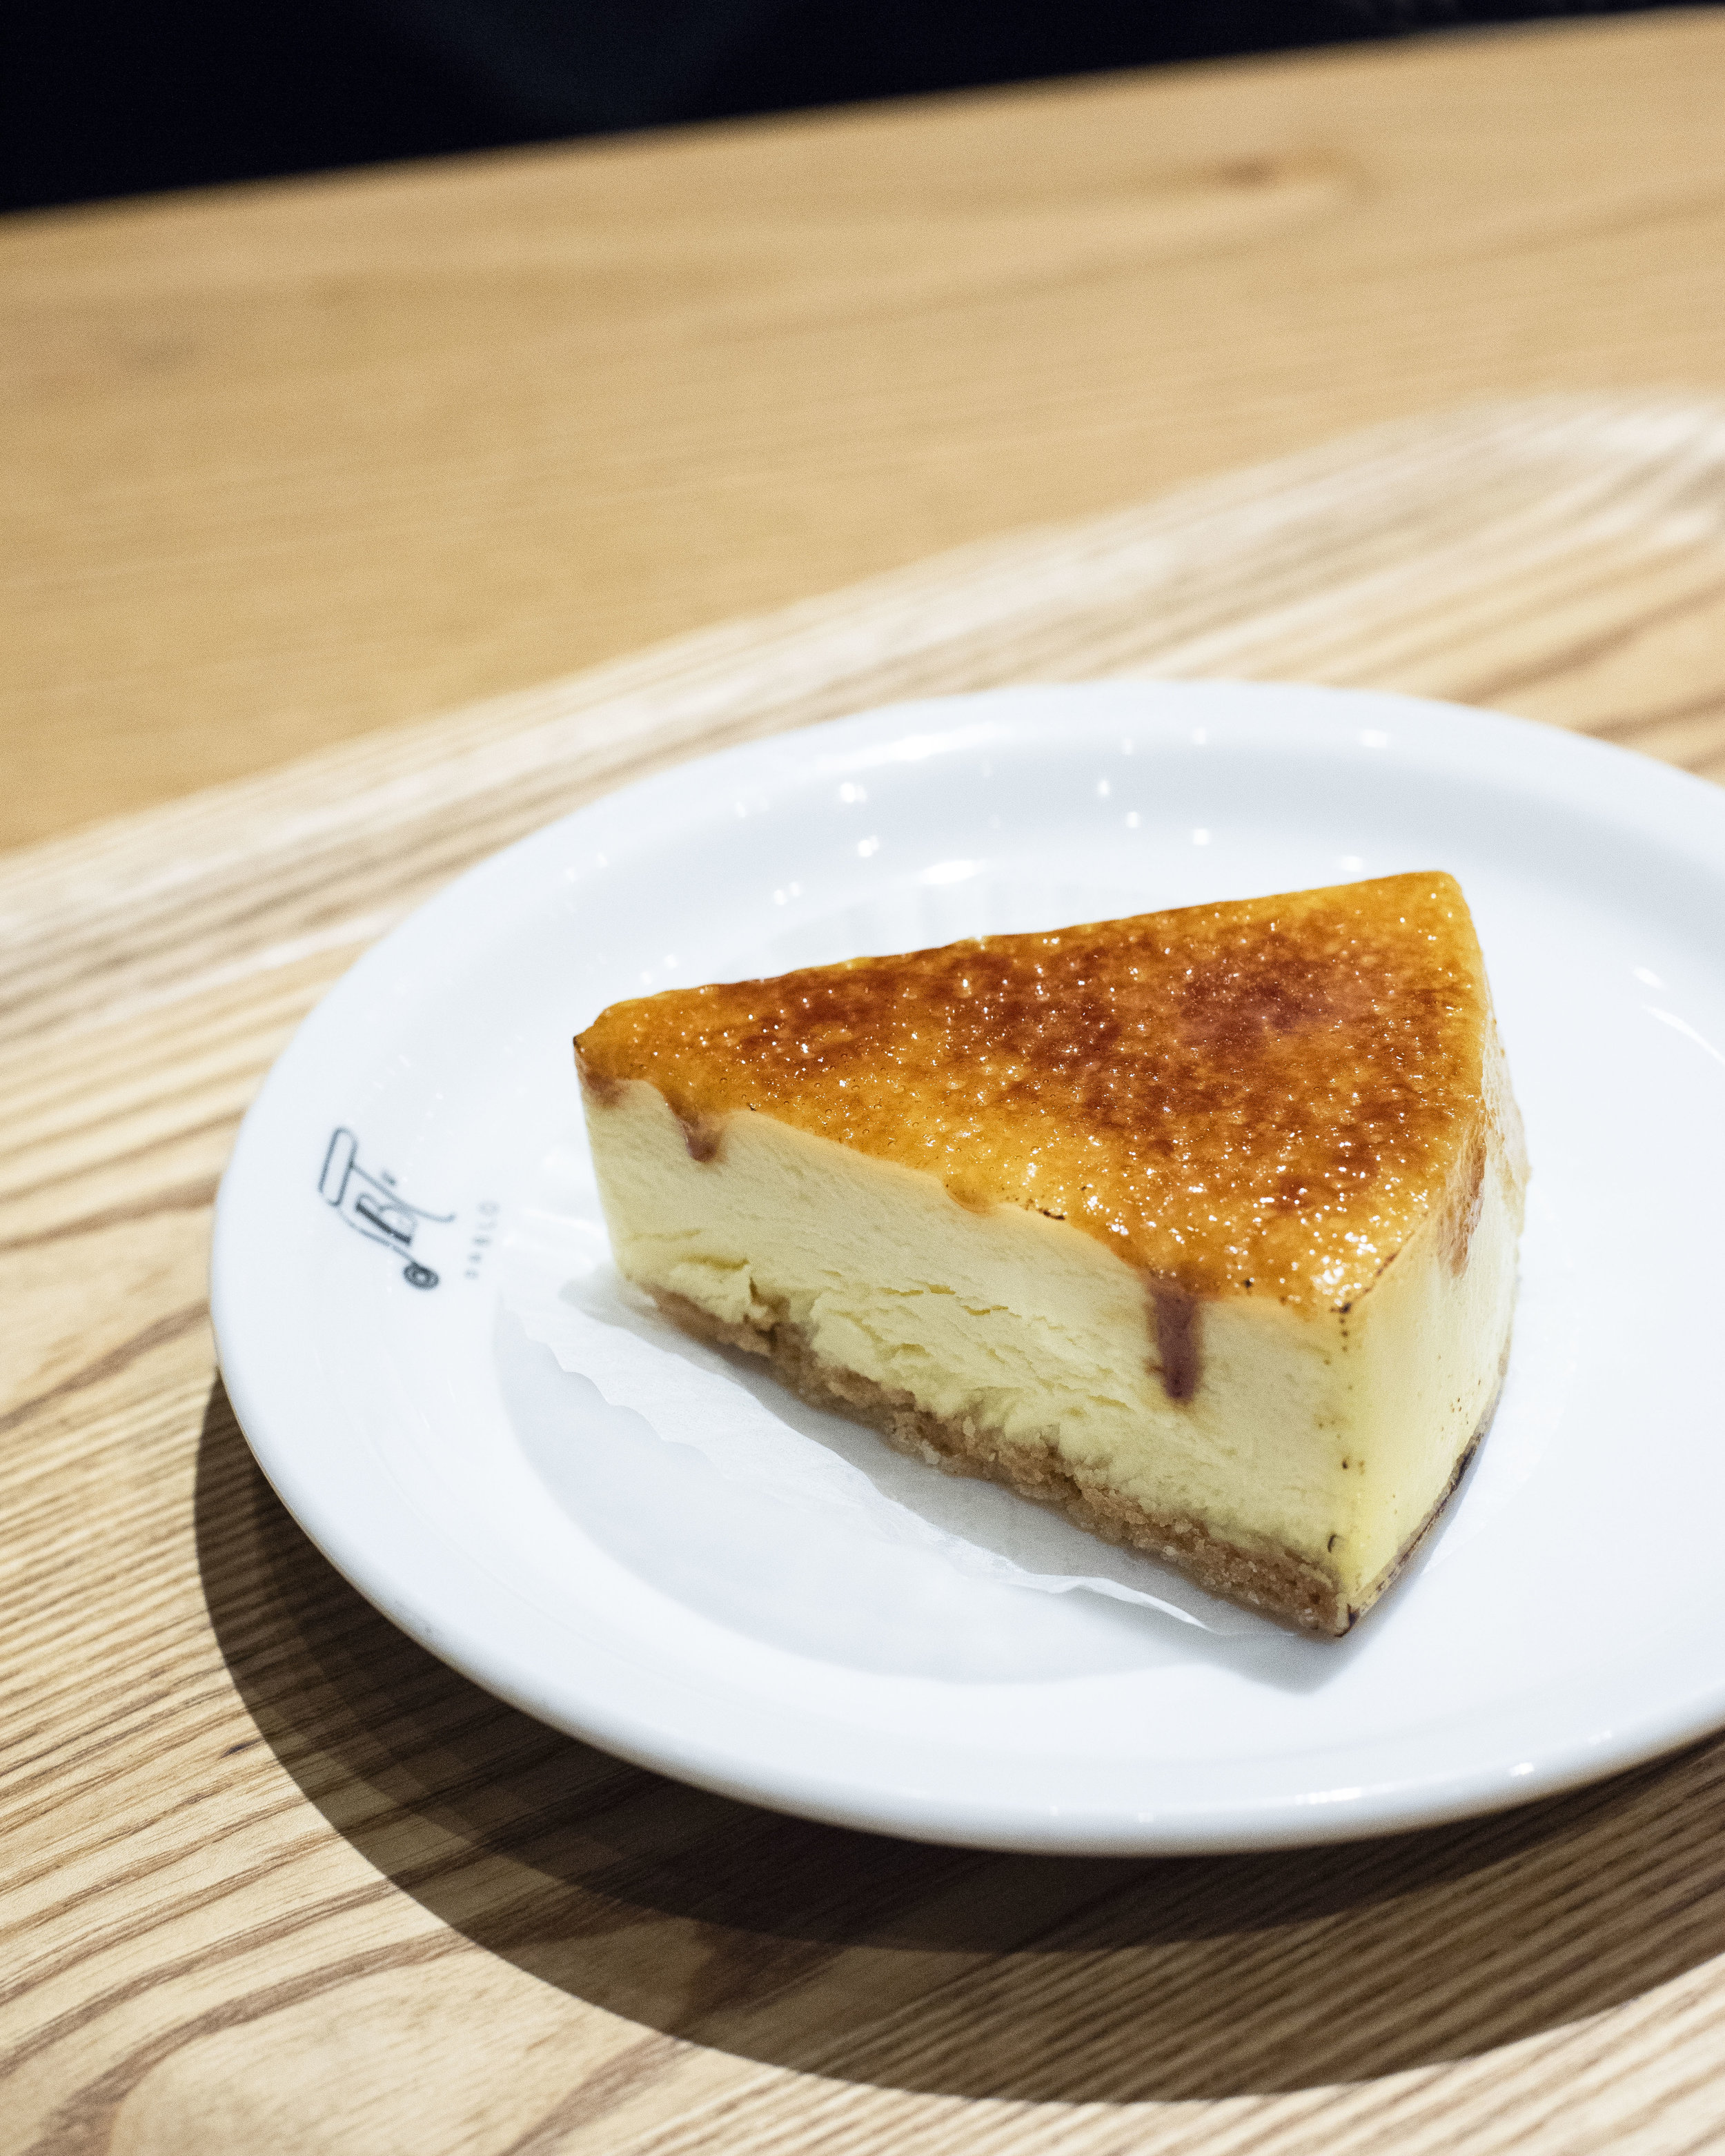 Cheesecake at Pablo, Osaka